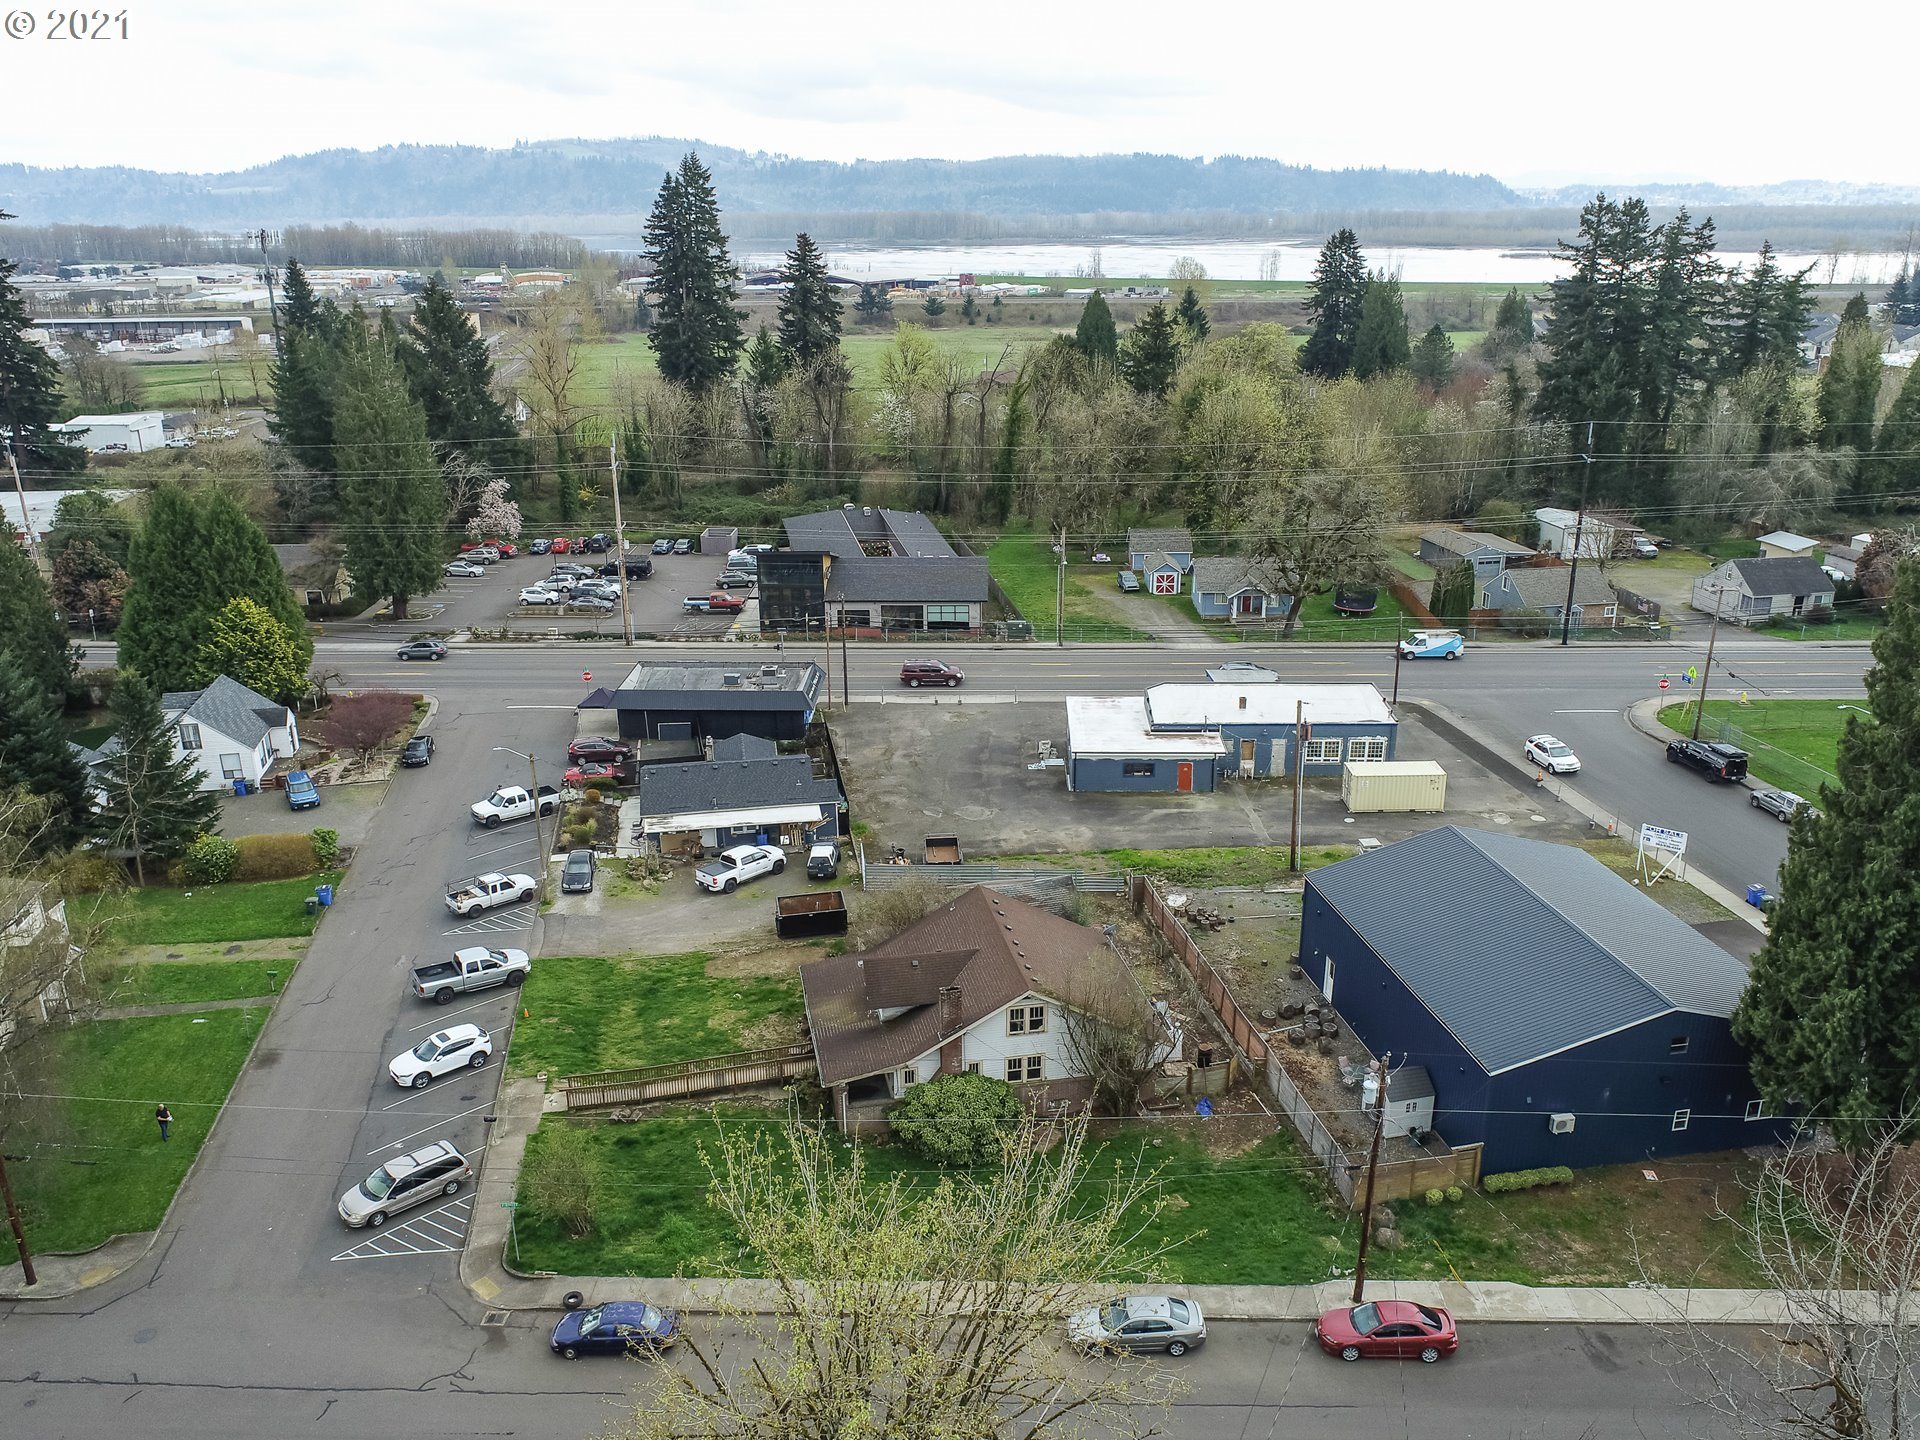 535 26TH ST, Washougal, Washington 98671, 3 Bedrooms Bedrooms, ,1 BathroomBathrooms,Single Family,For Sale,535 26TH ST,2,21420184